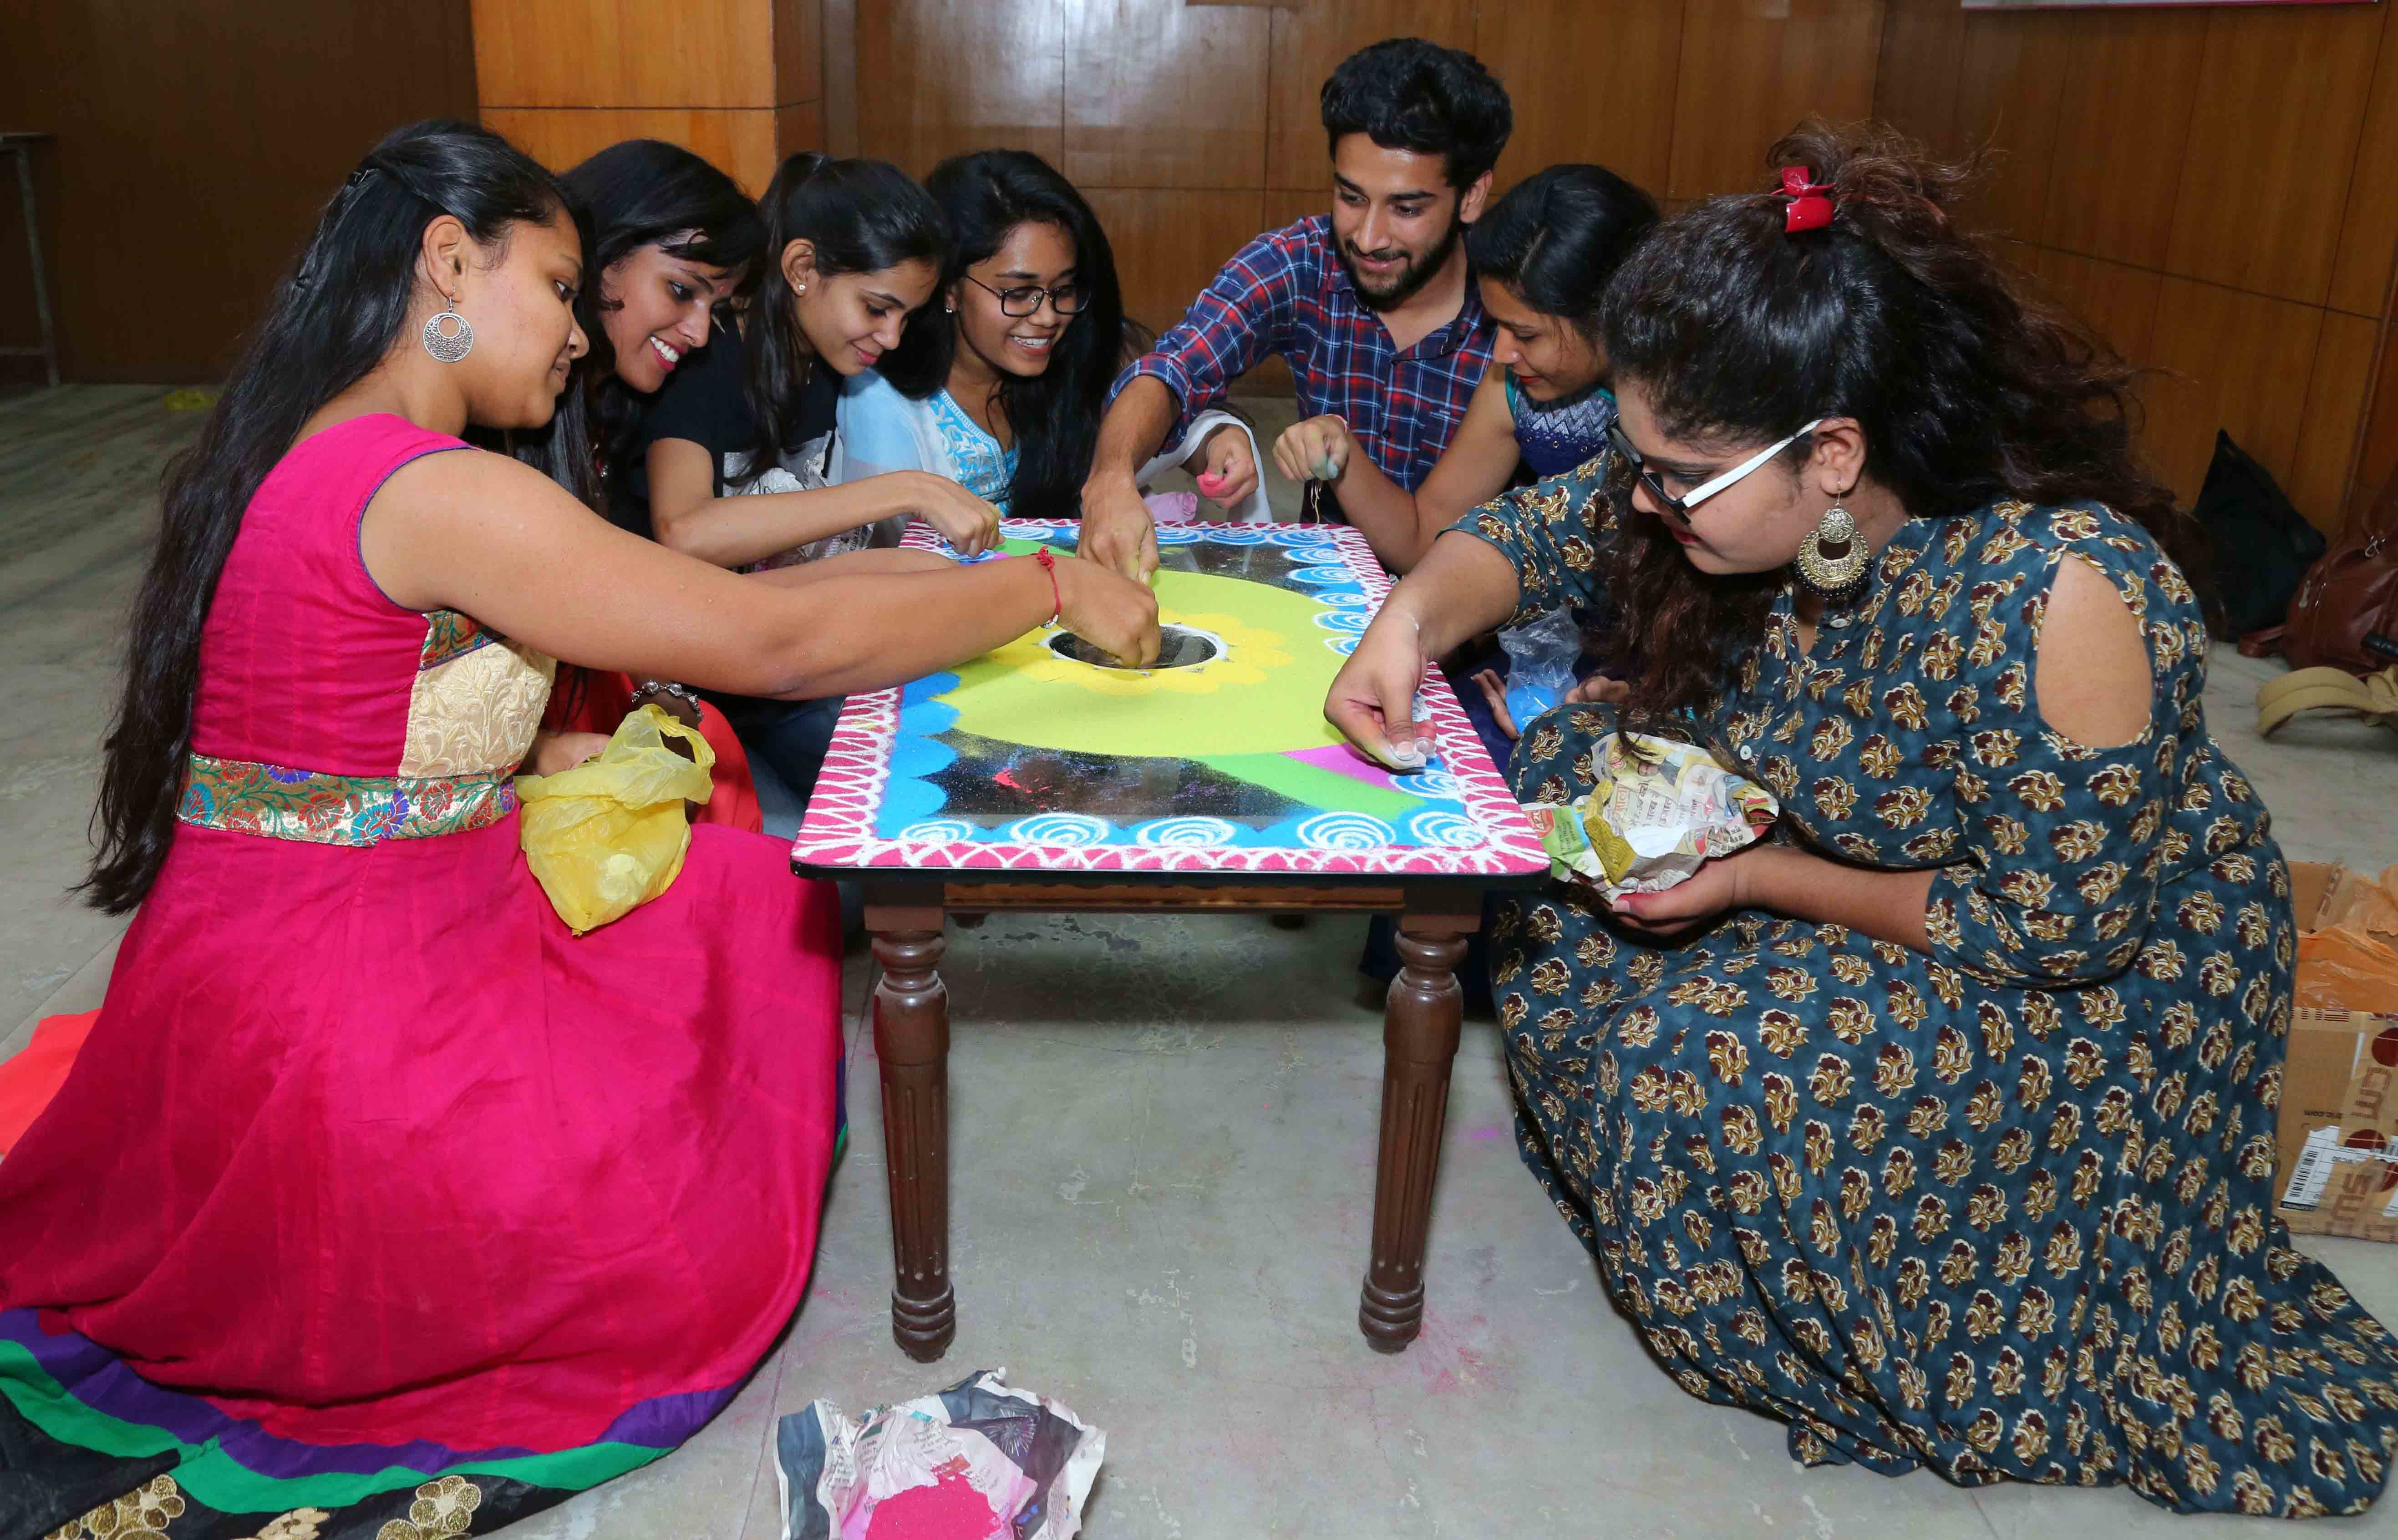 Spending more time with each other in activities like rangoli